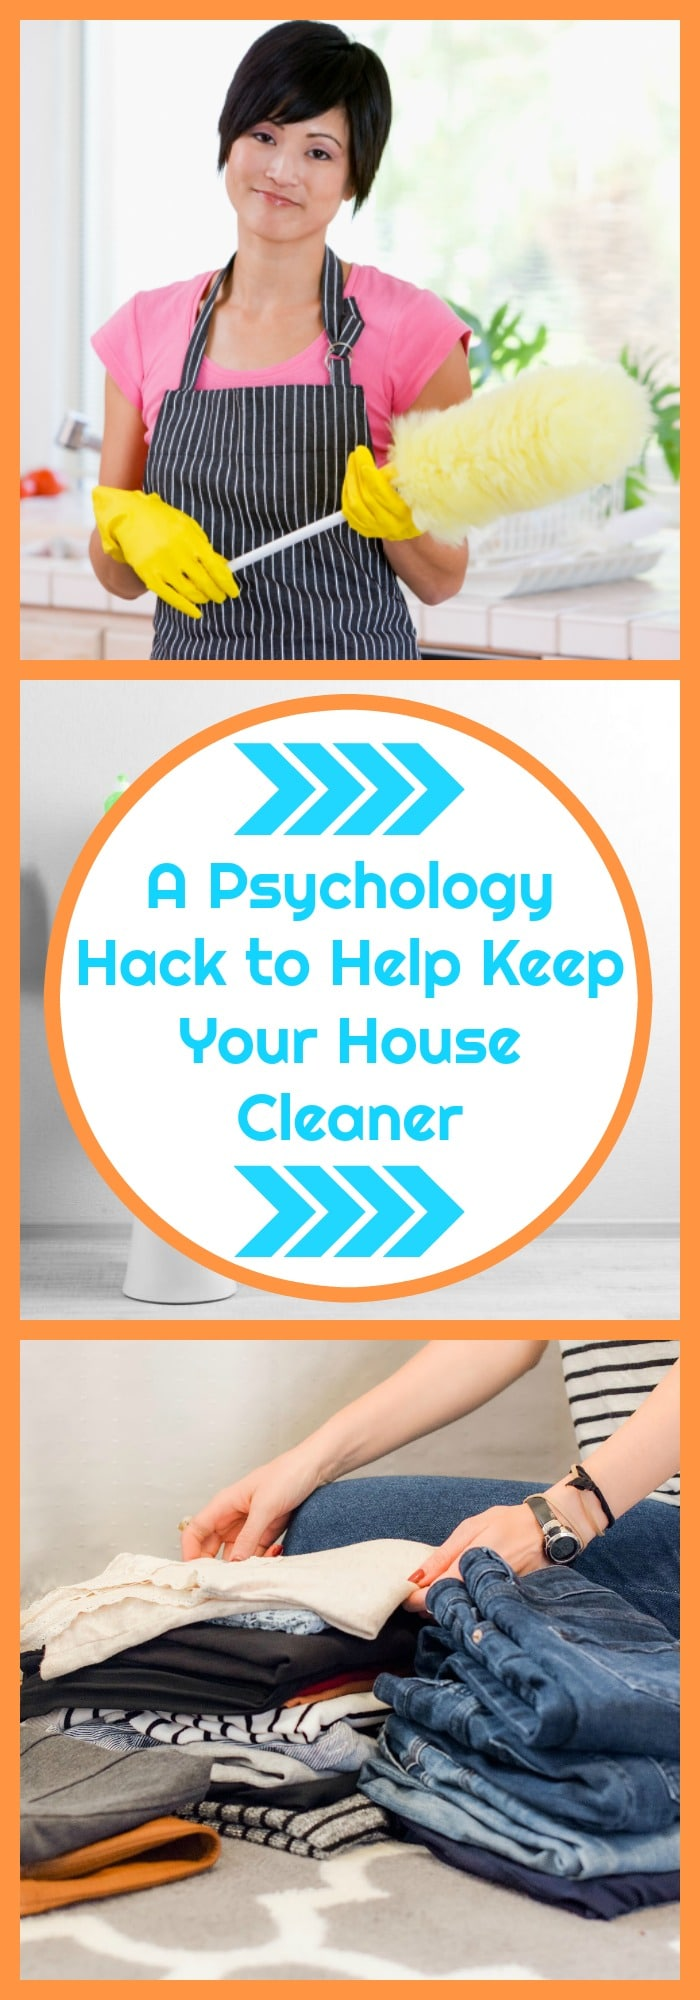 A Psychology Hack to Help Keep Your House Cleaner